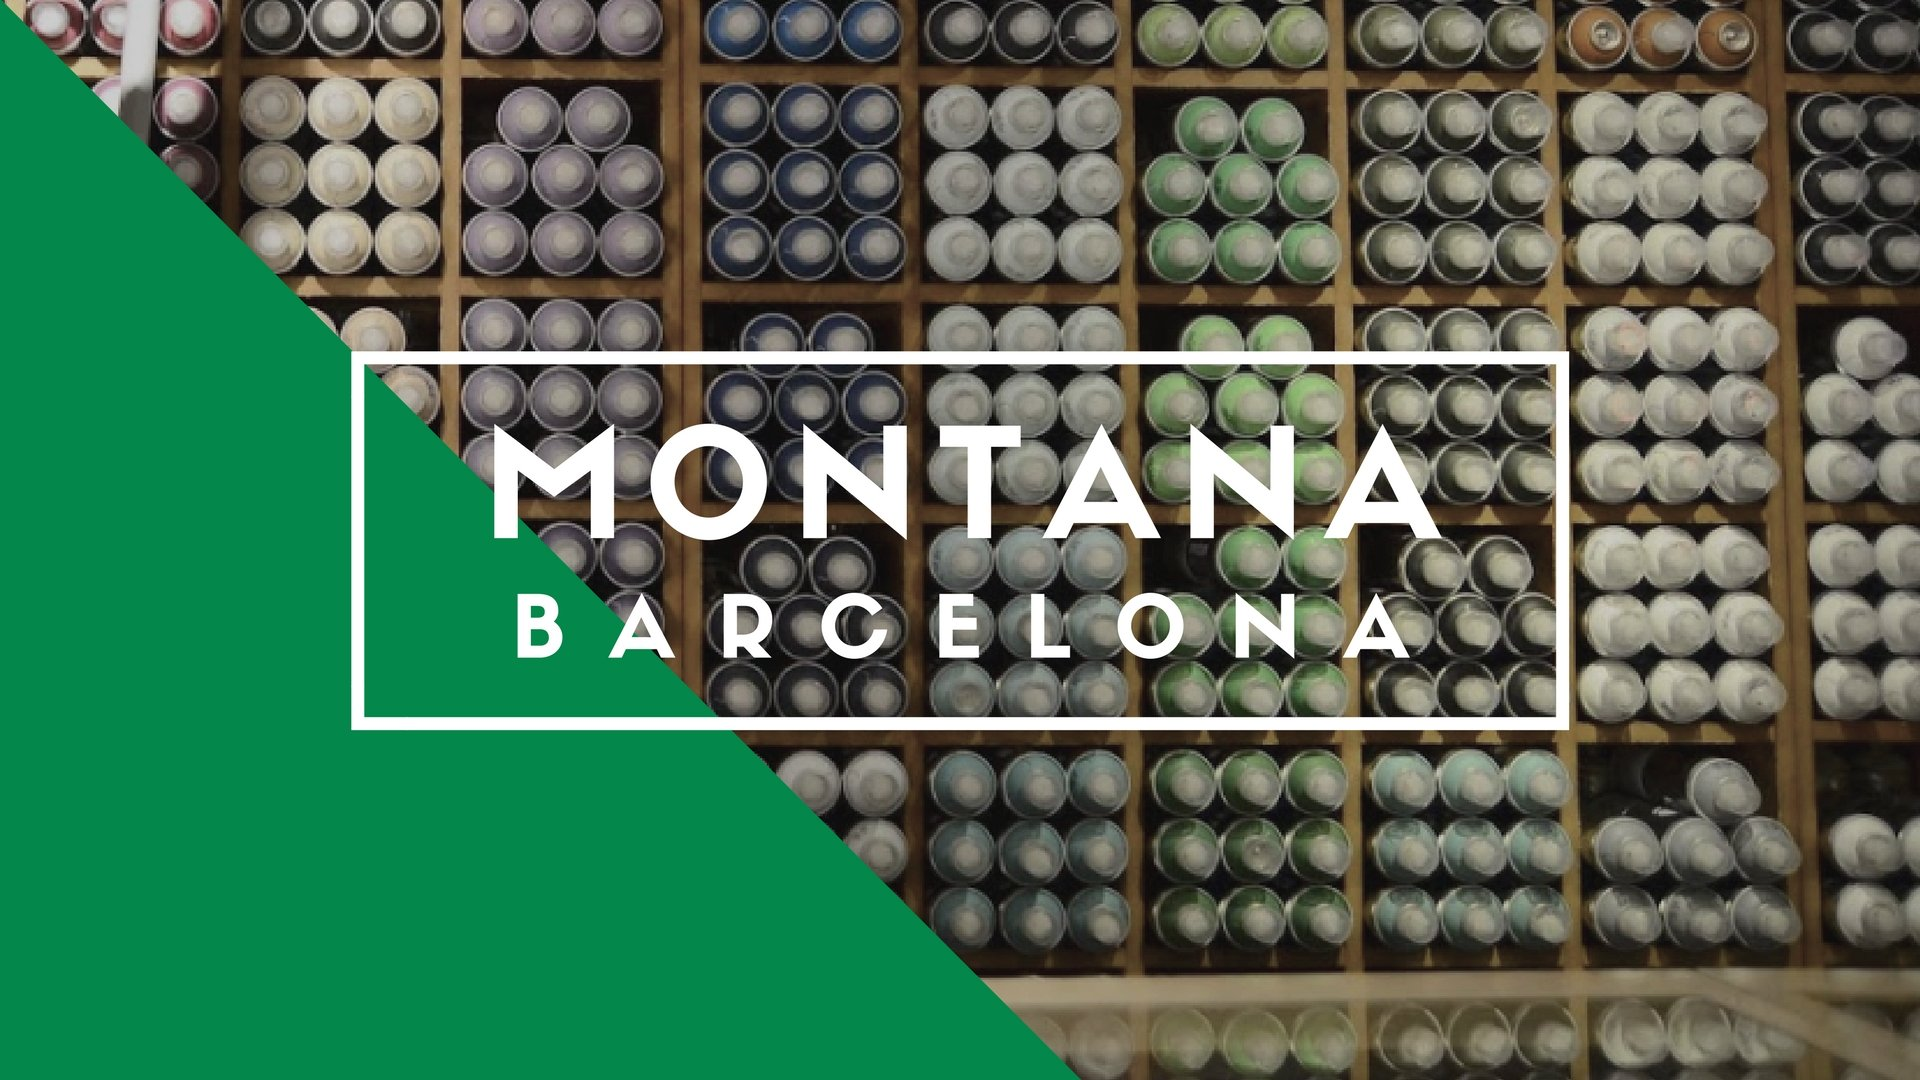 Montana Shop & Gallery, Barcelona